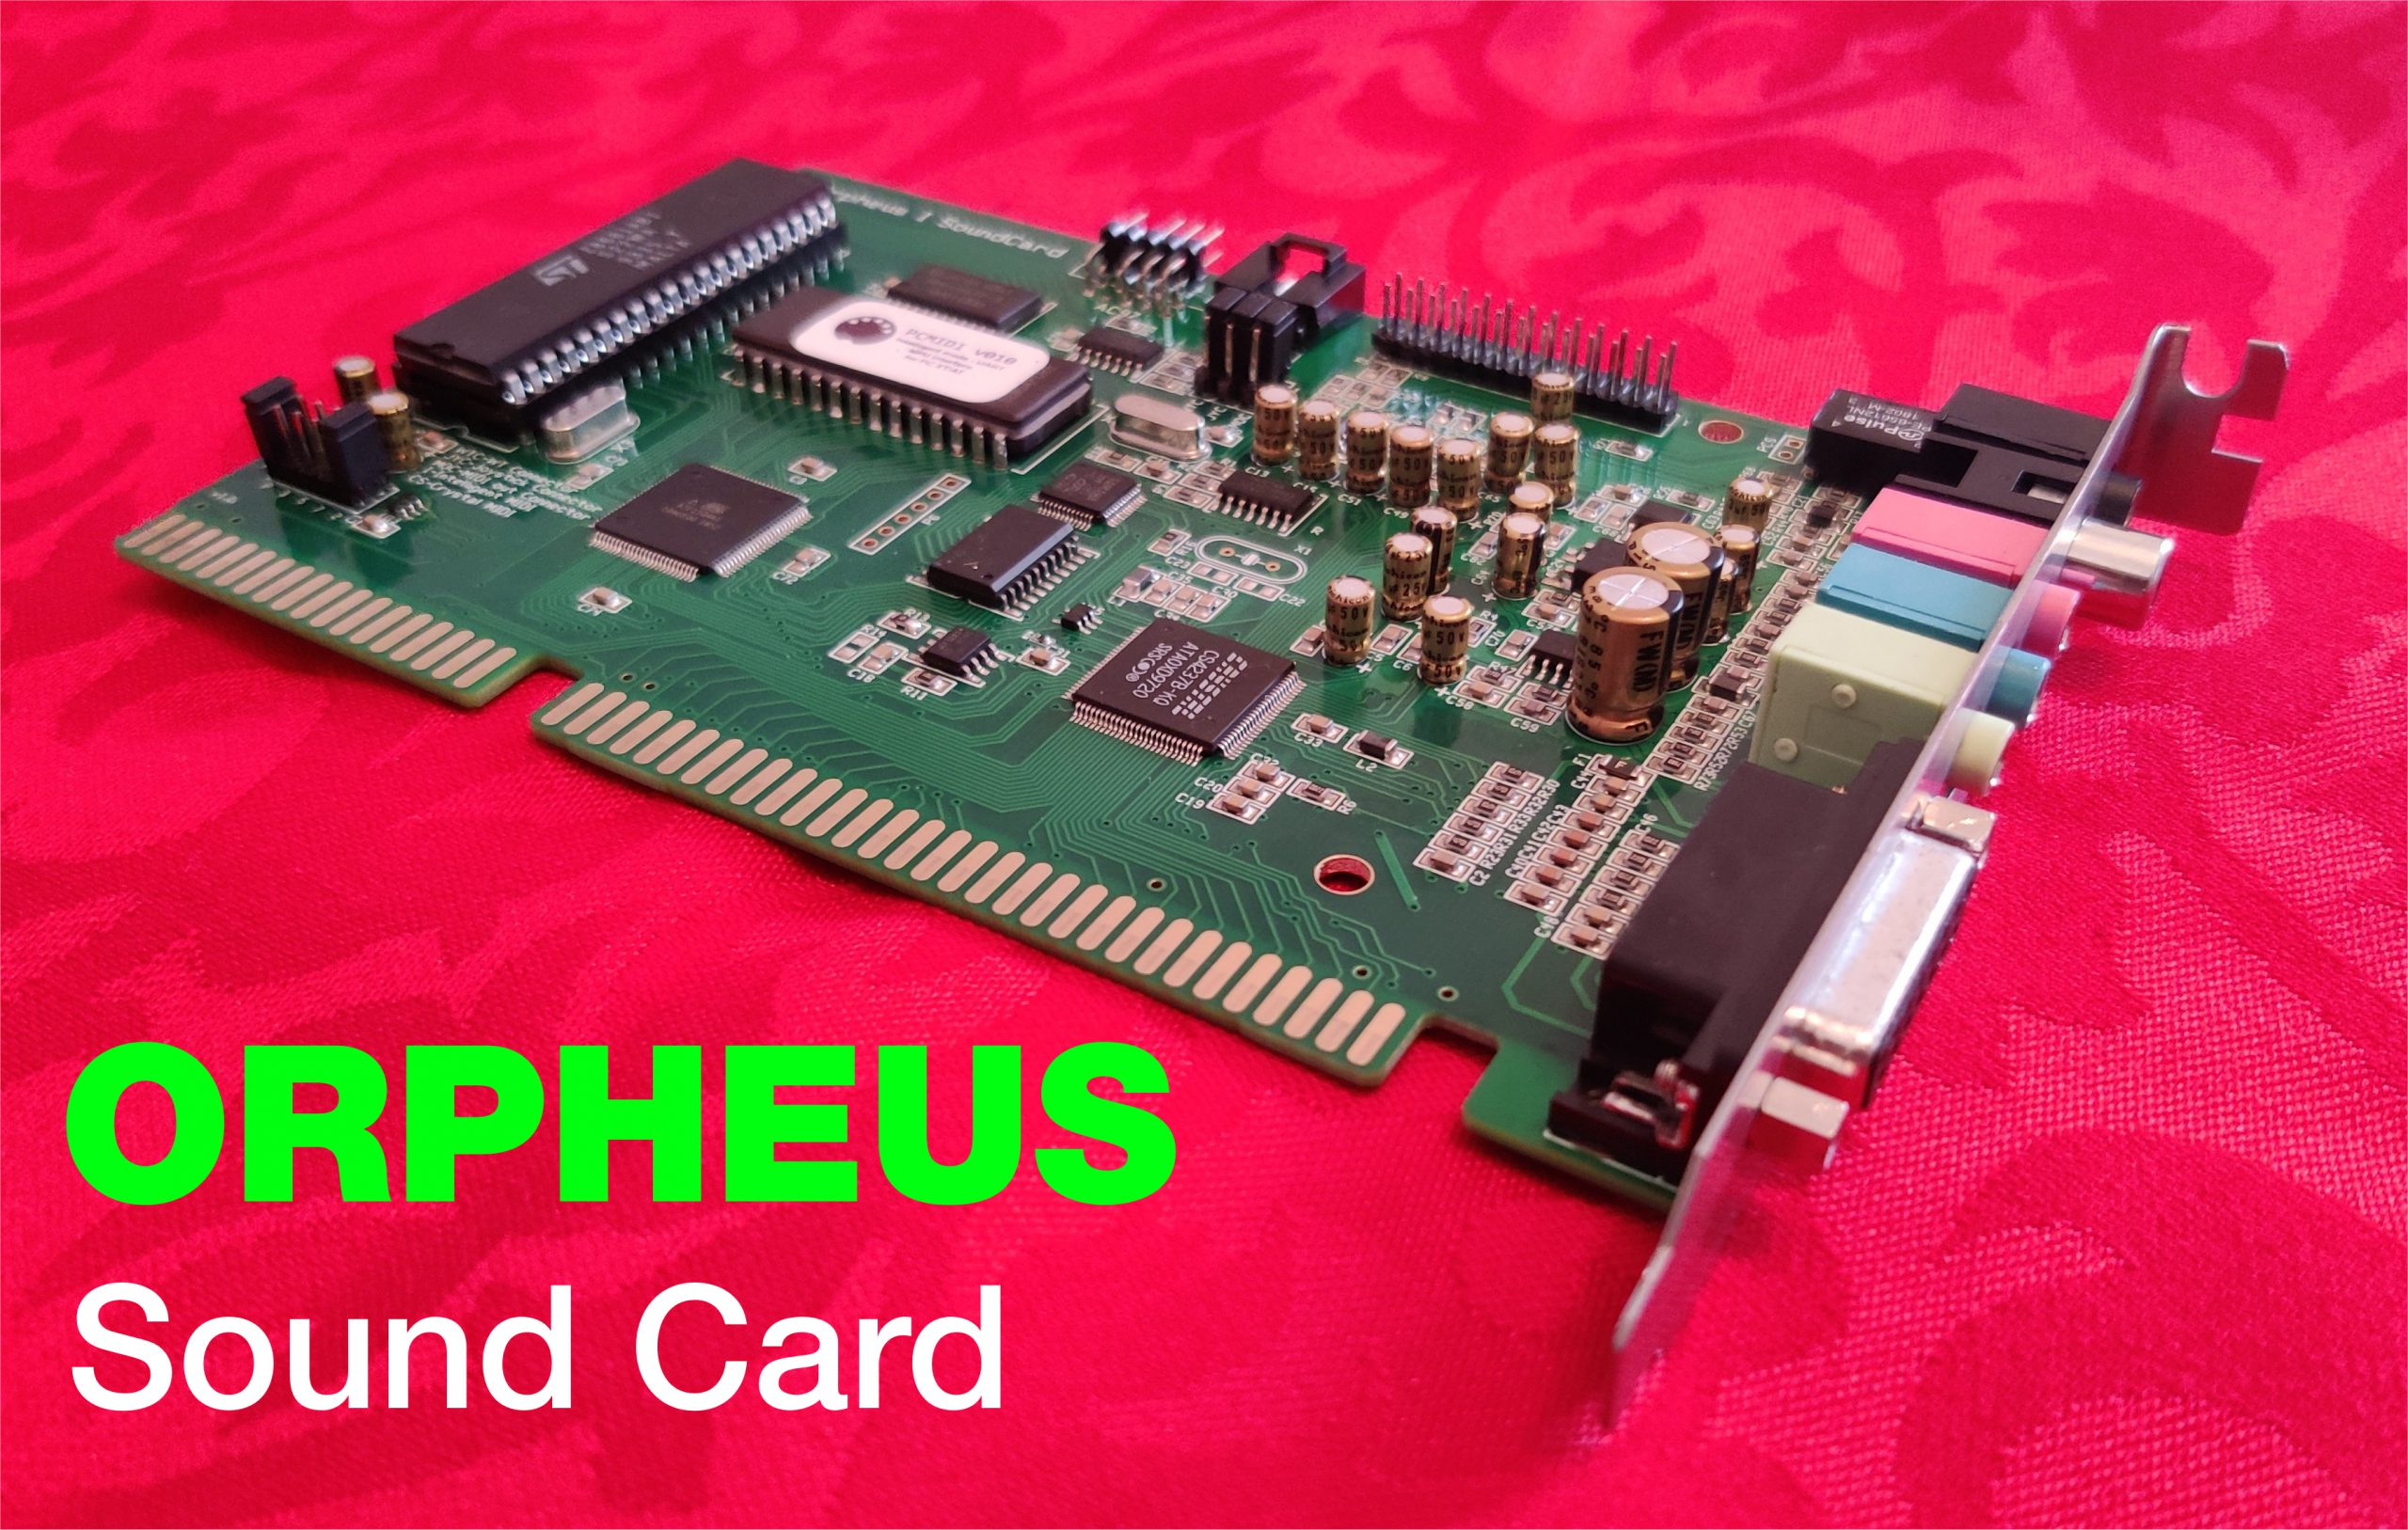 Orpheus: The Ultimate Classic DOS Gaming PC Sound Card